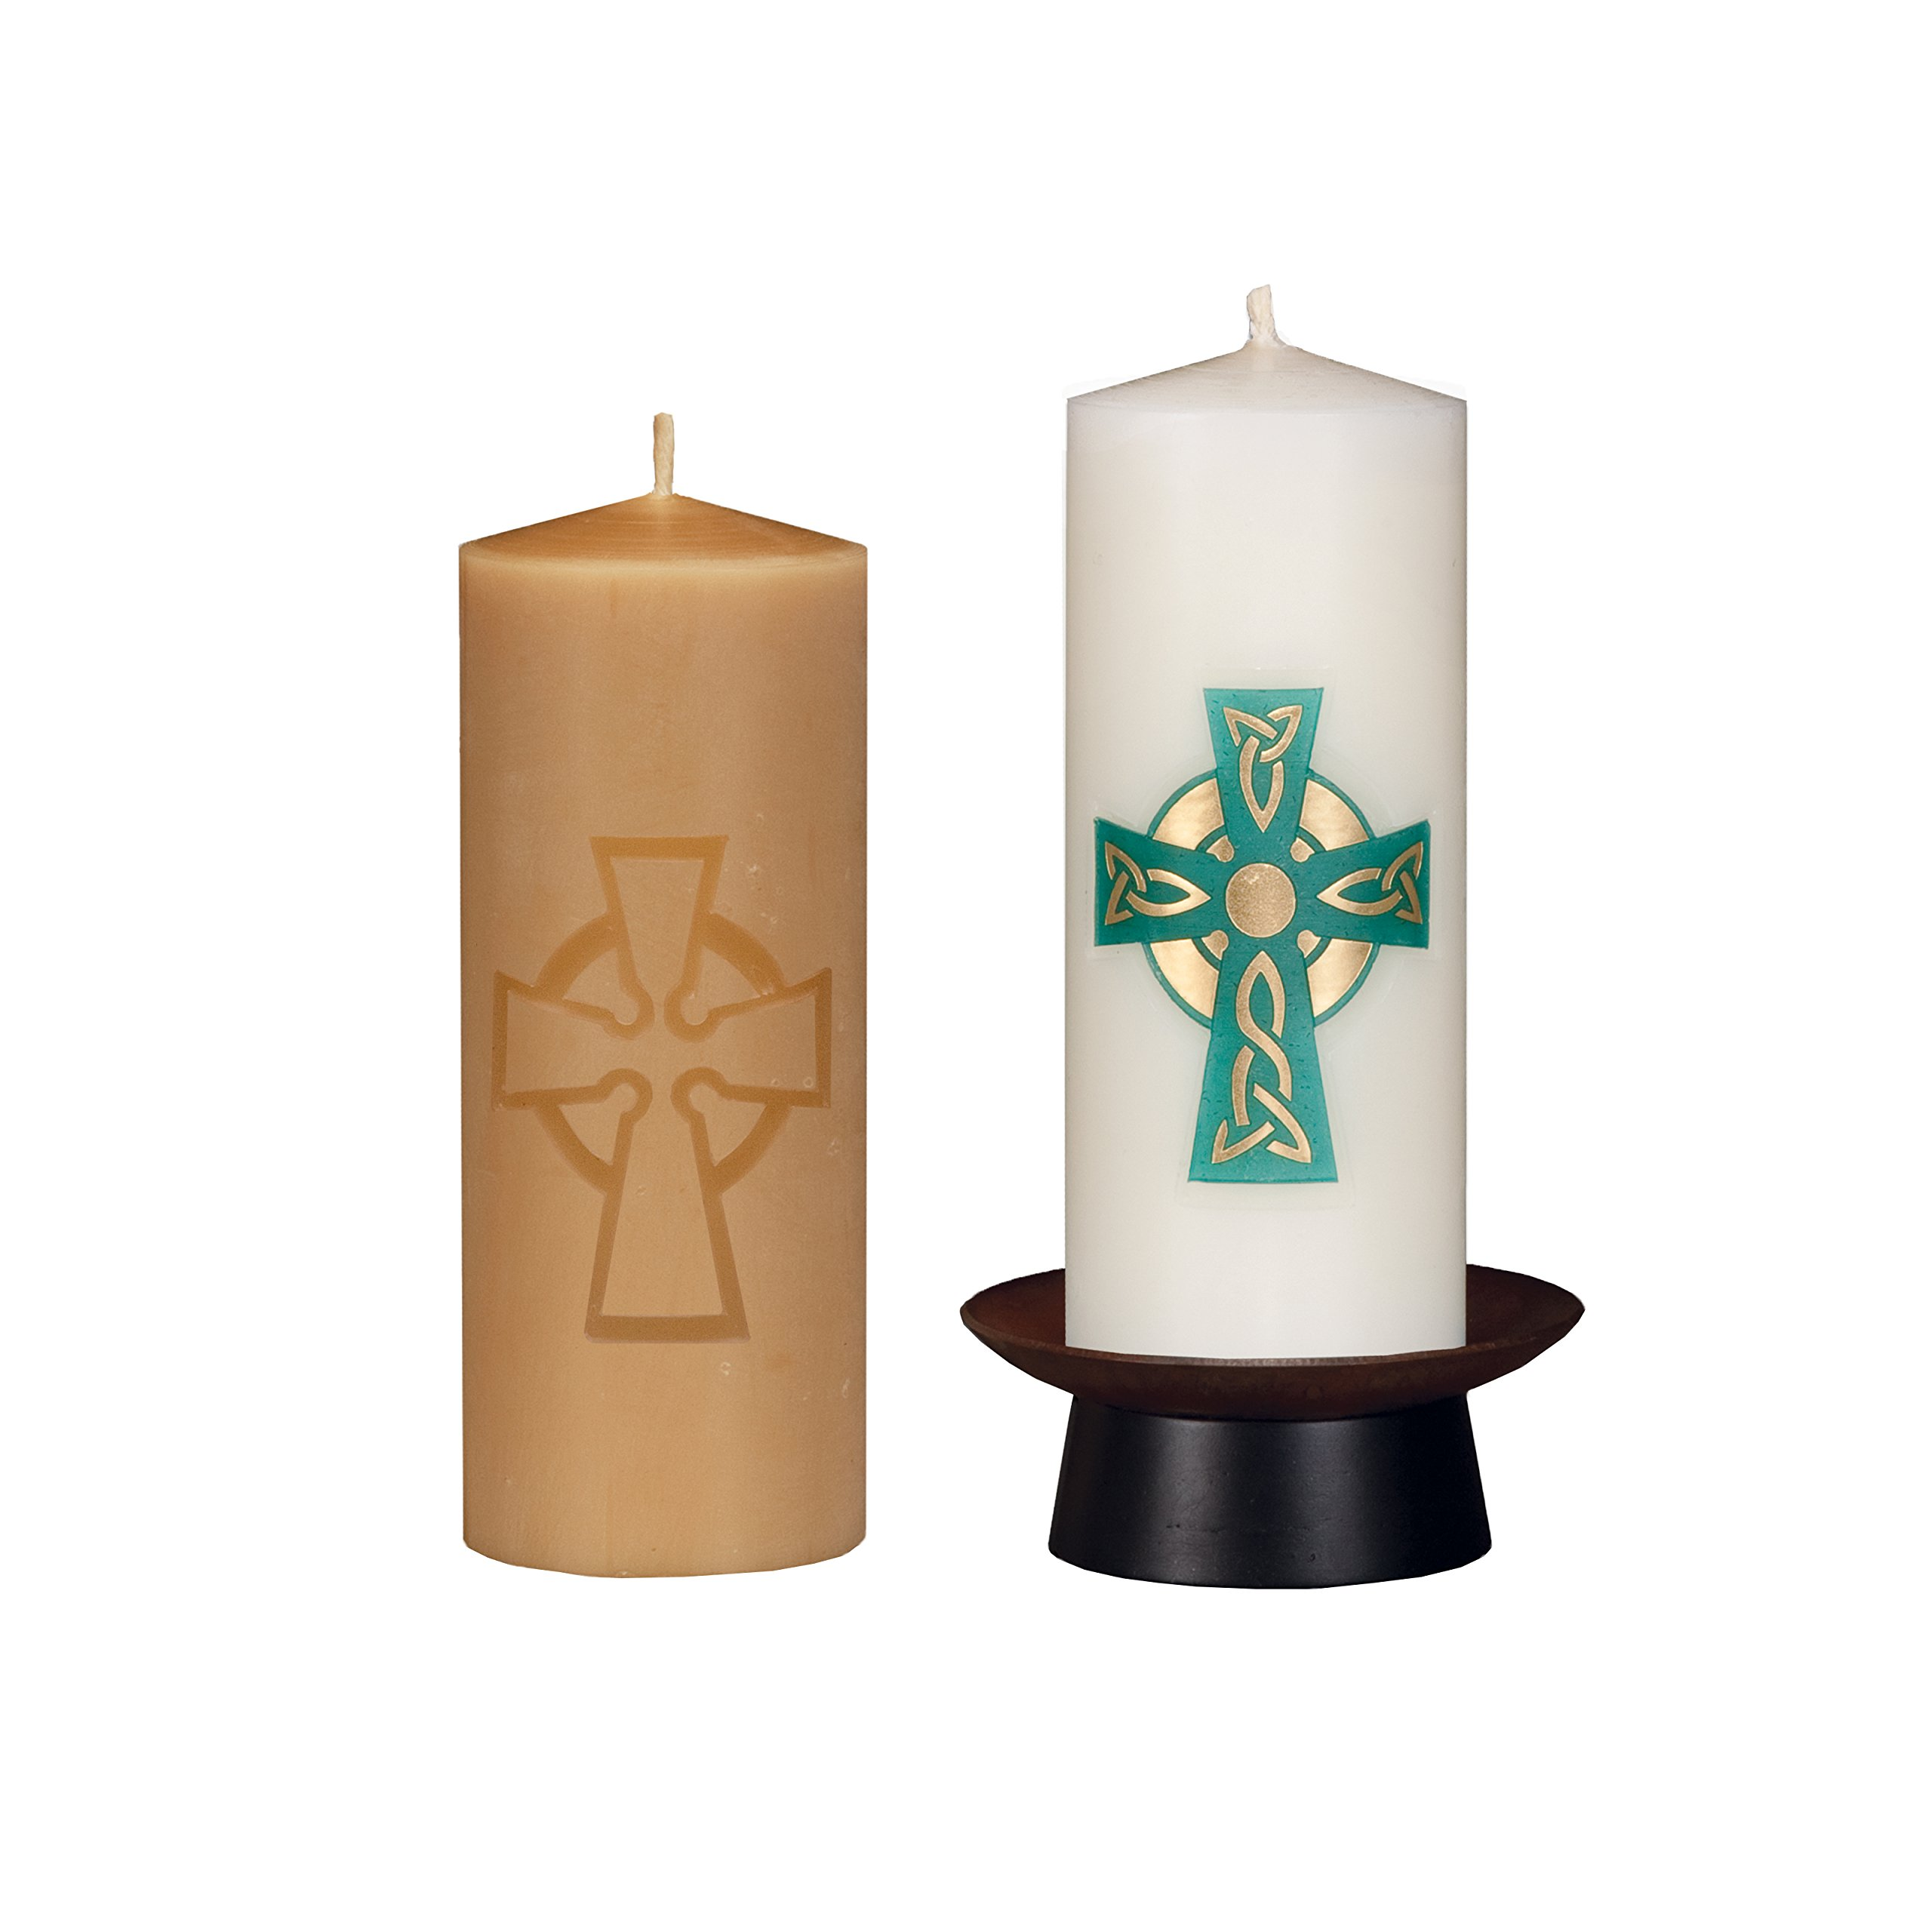 Beeswax Christos™ Candle Set; 2-1/2'' x 6'' candles with base; Armagh™ design in green and 22K gold. Handcrafted in New England. Made in America. by Marklin Candle